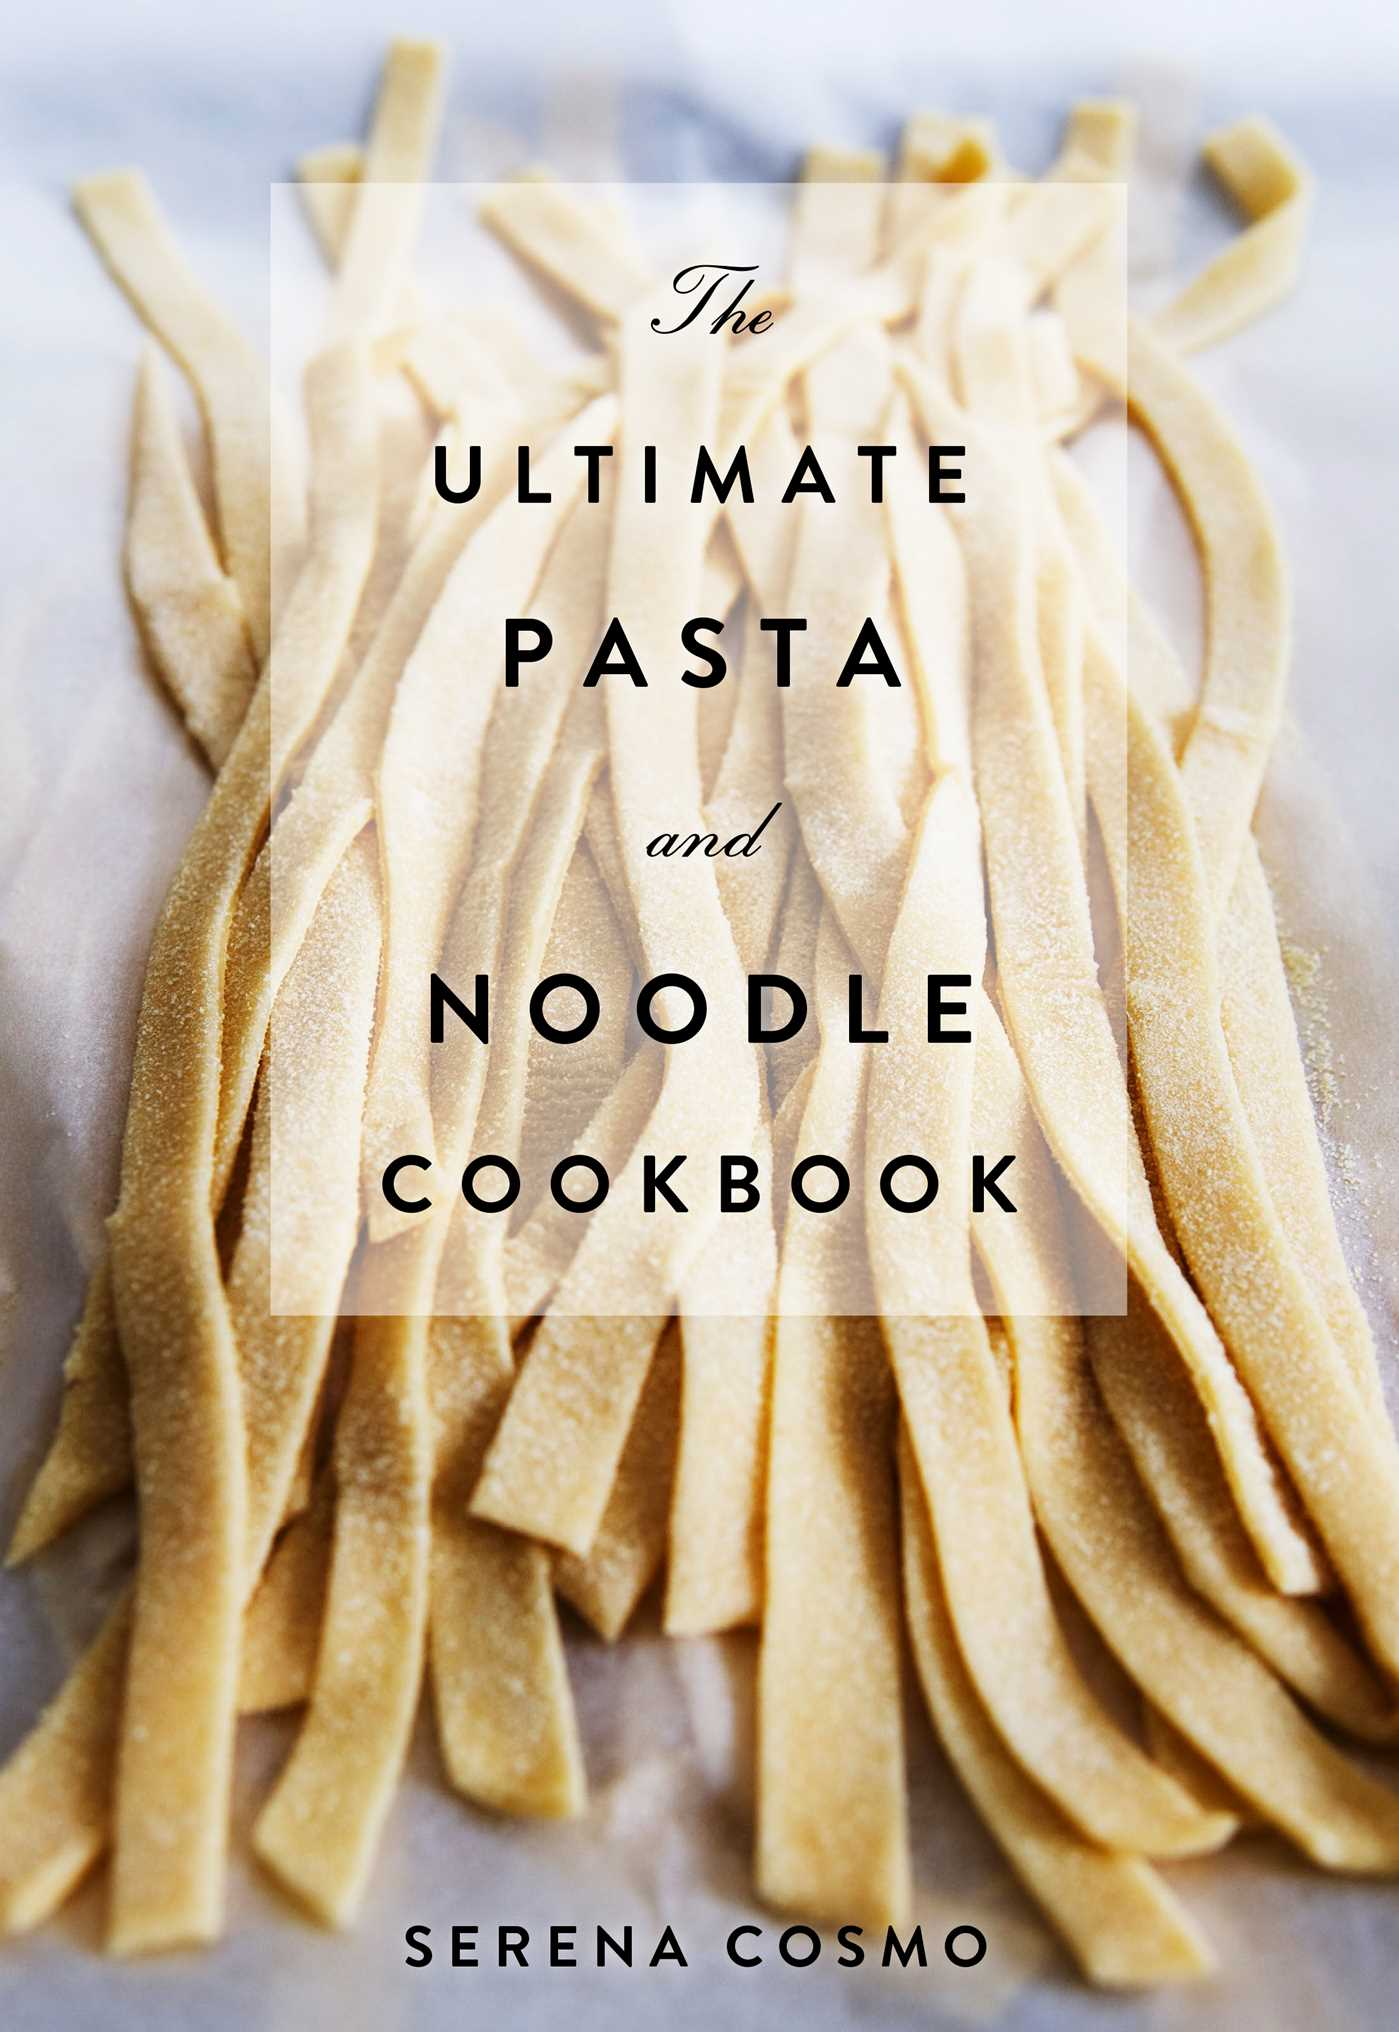 The ultimate pasta and noodle cookbook 9781604337334 hr